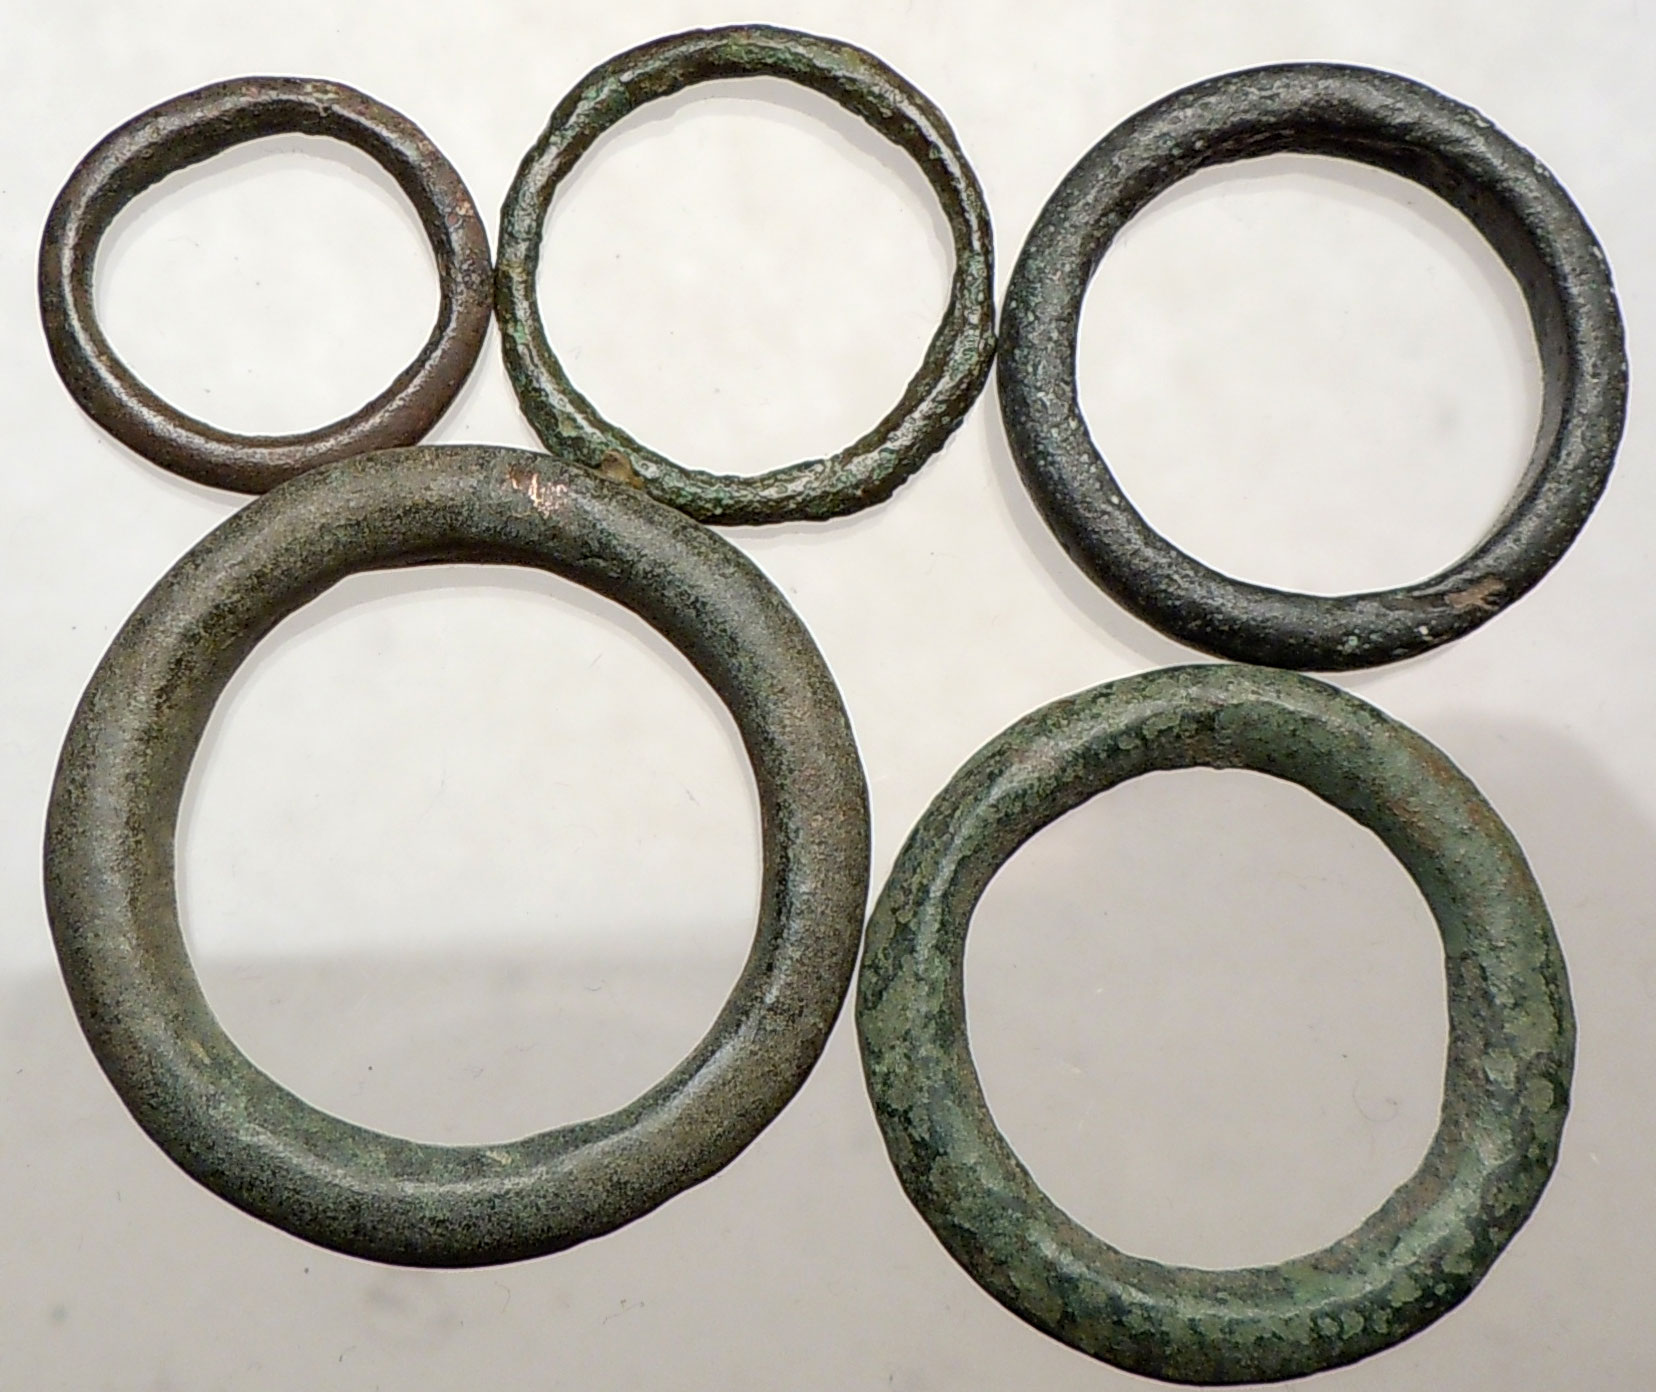 celtic 800bc genuine ancient ring money proto coin